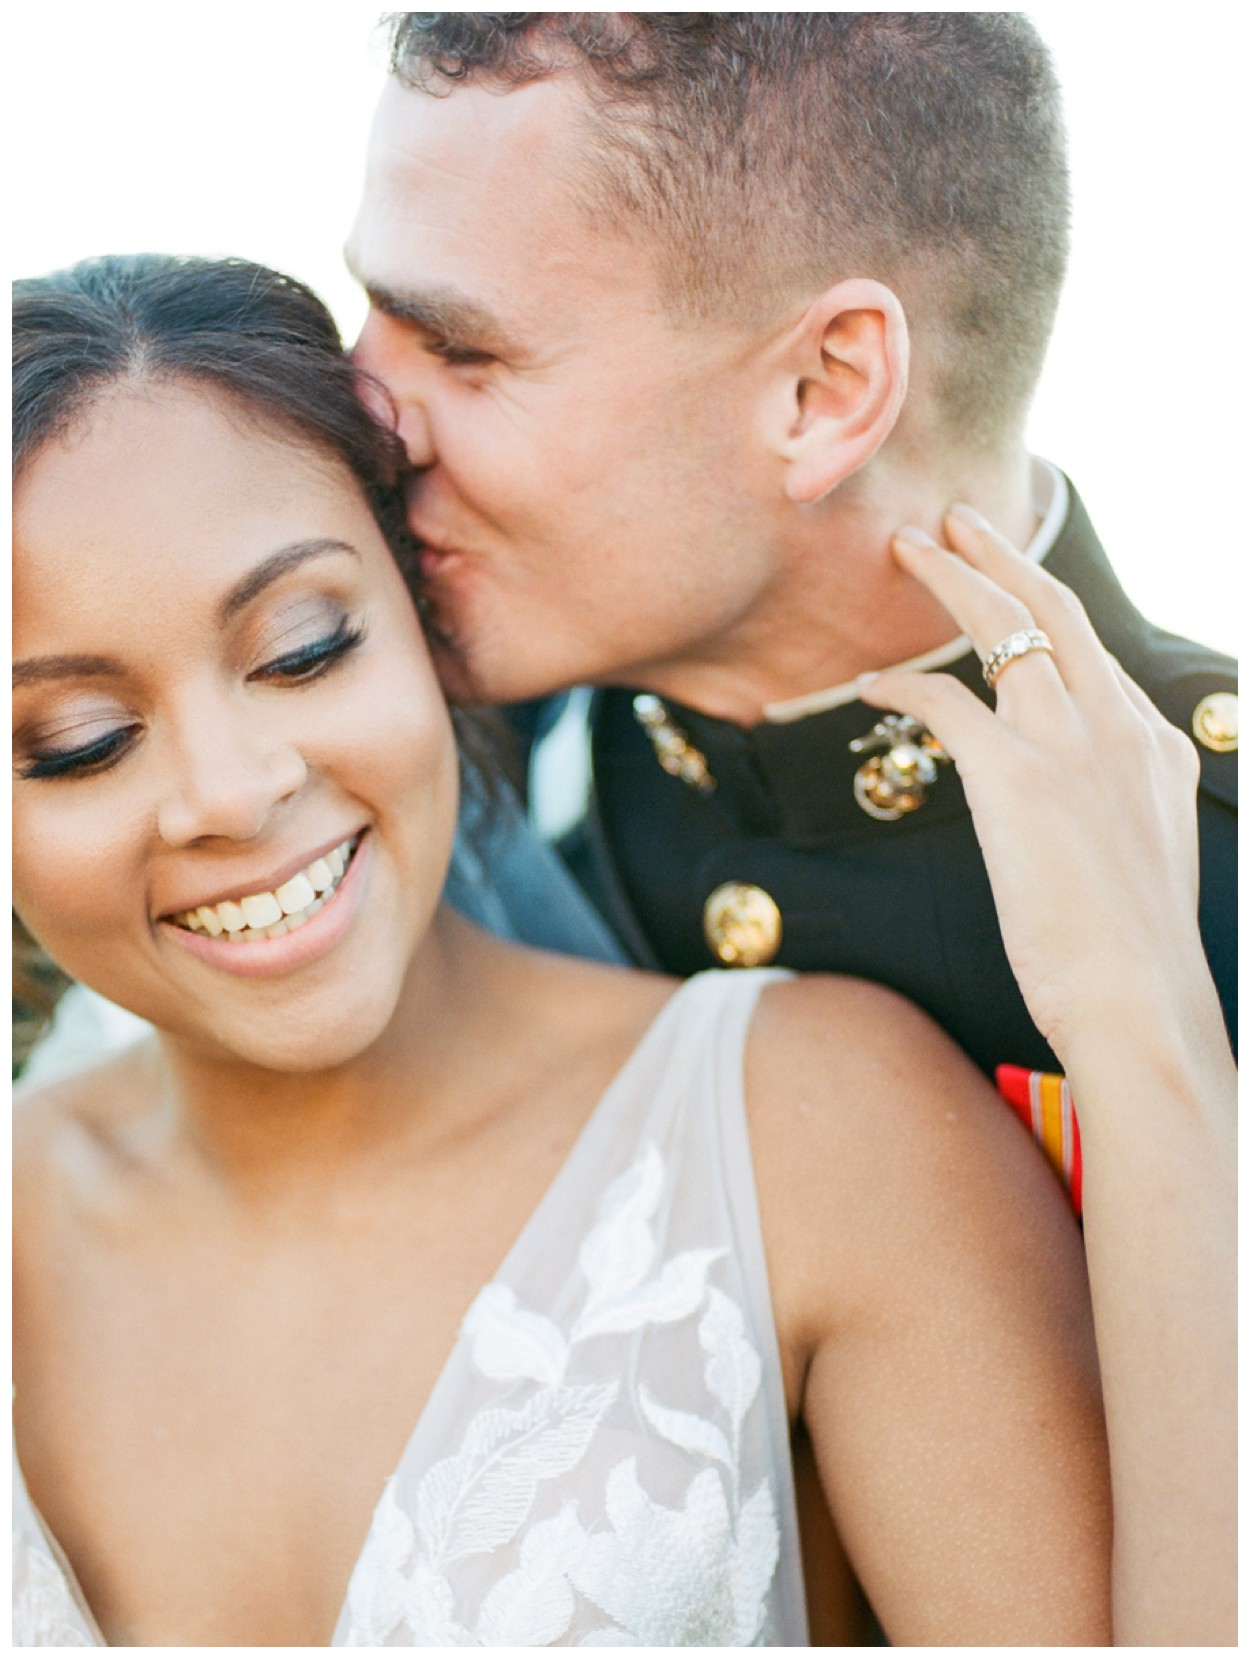 Sun drenched fall wedding in shades of pink at Oxon Hill Manor in Maryland bride and groom portrait by Washington DC fine art photographer Lissa Ryan Photography